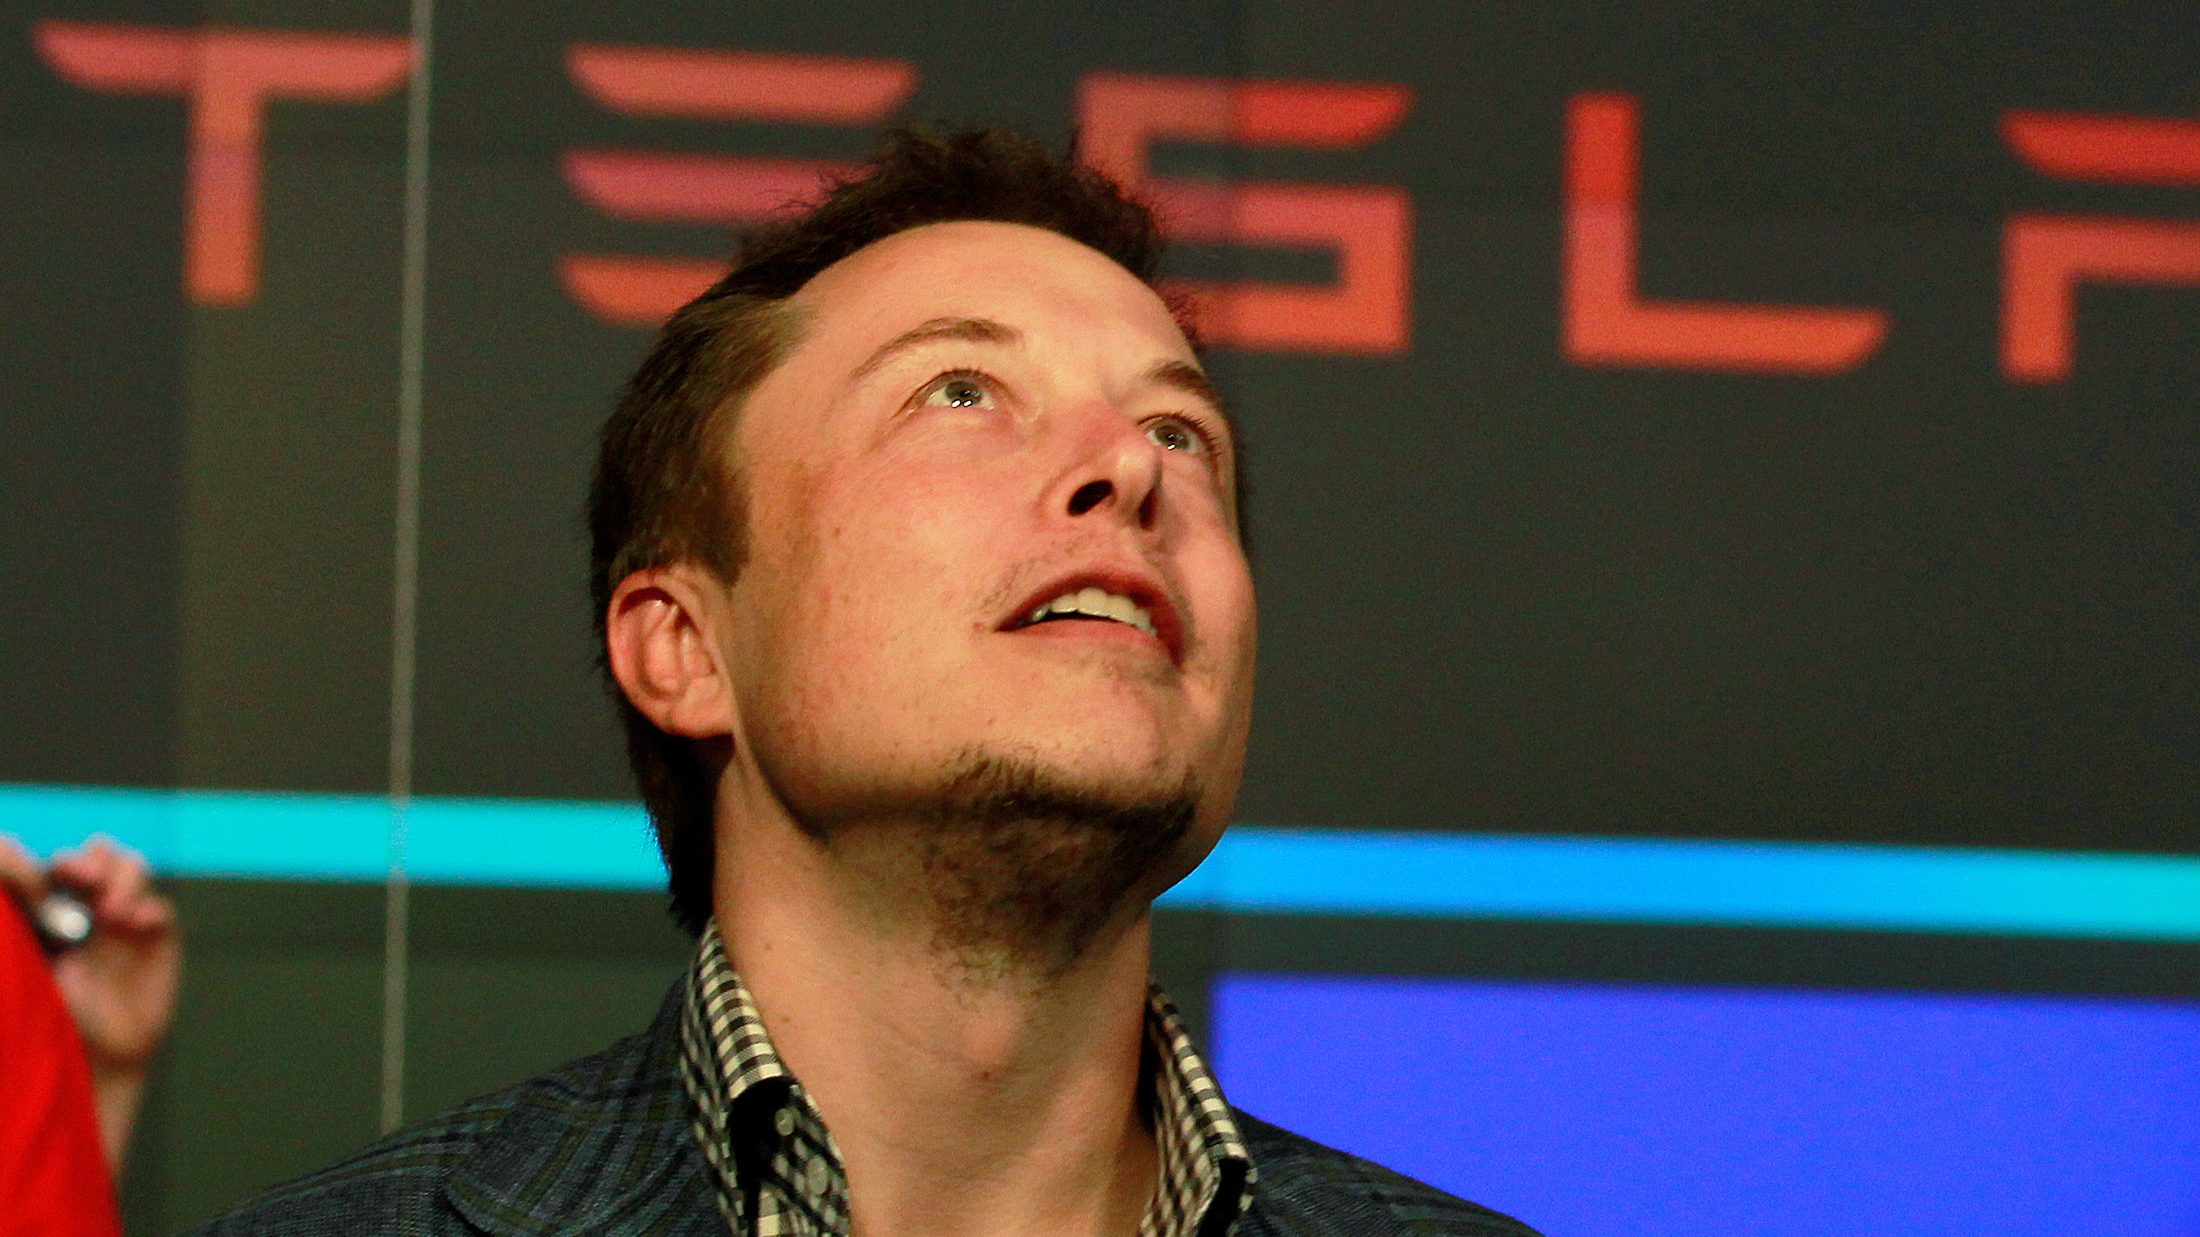 CEO of Tesla Motors Elon Musk reacts following the company's initial public offering at the NASDAQ market in New York June 29, 2010.